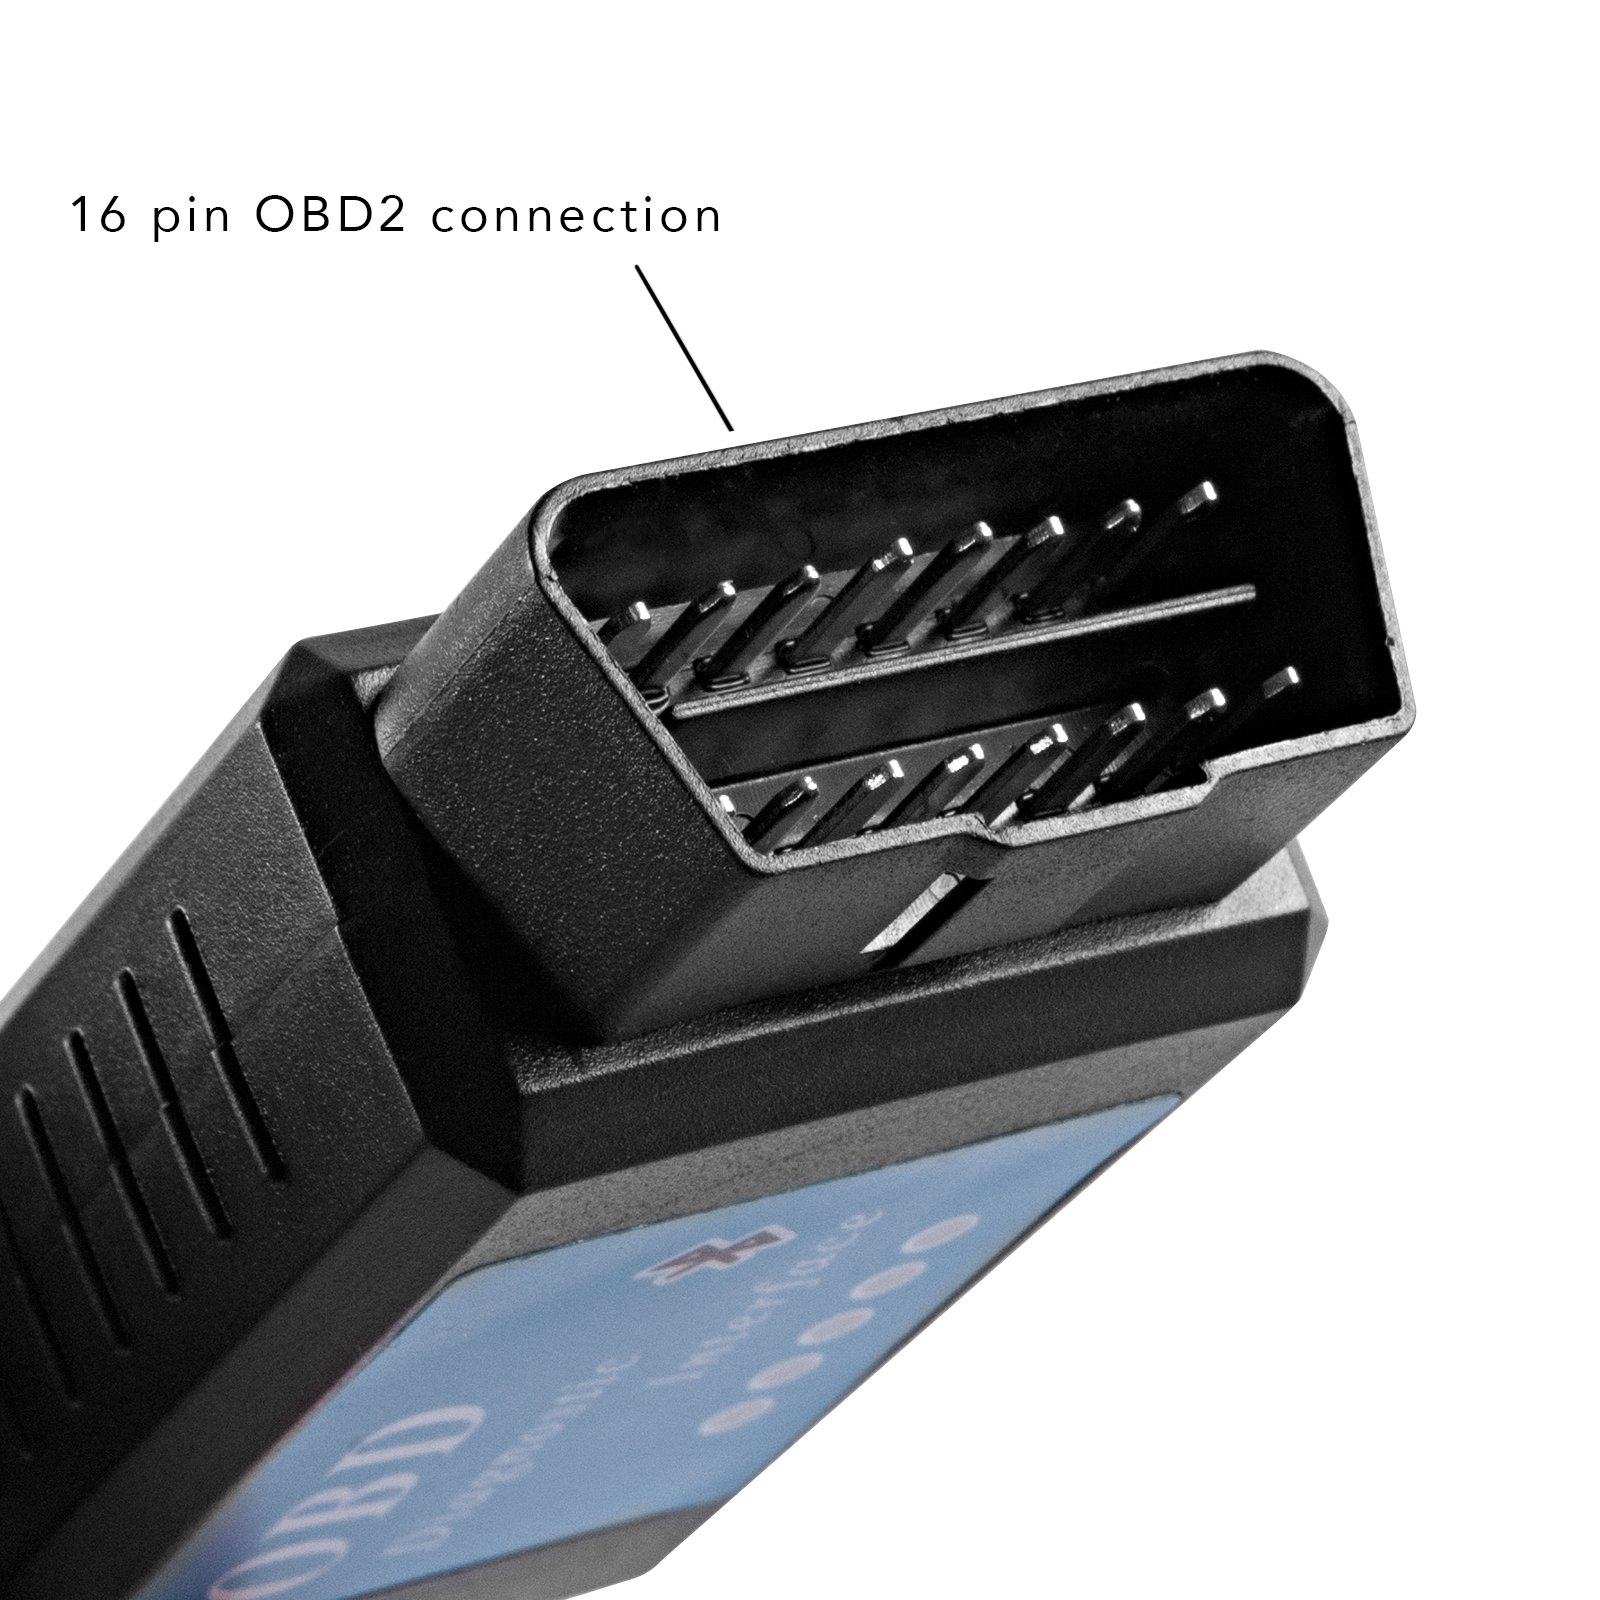 Kobra WiFi OBD Scan Tool OBD Scanner (Android Devices Only) by KOBRA Products (Image #2)